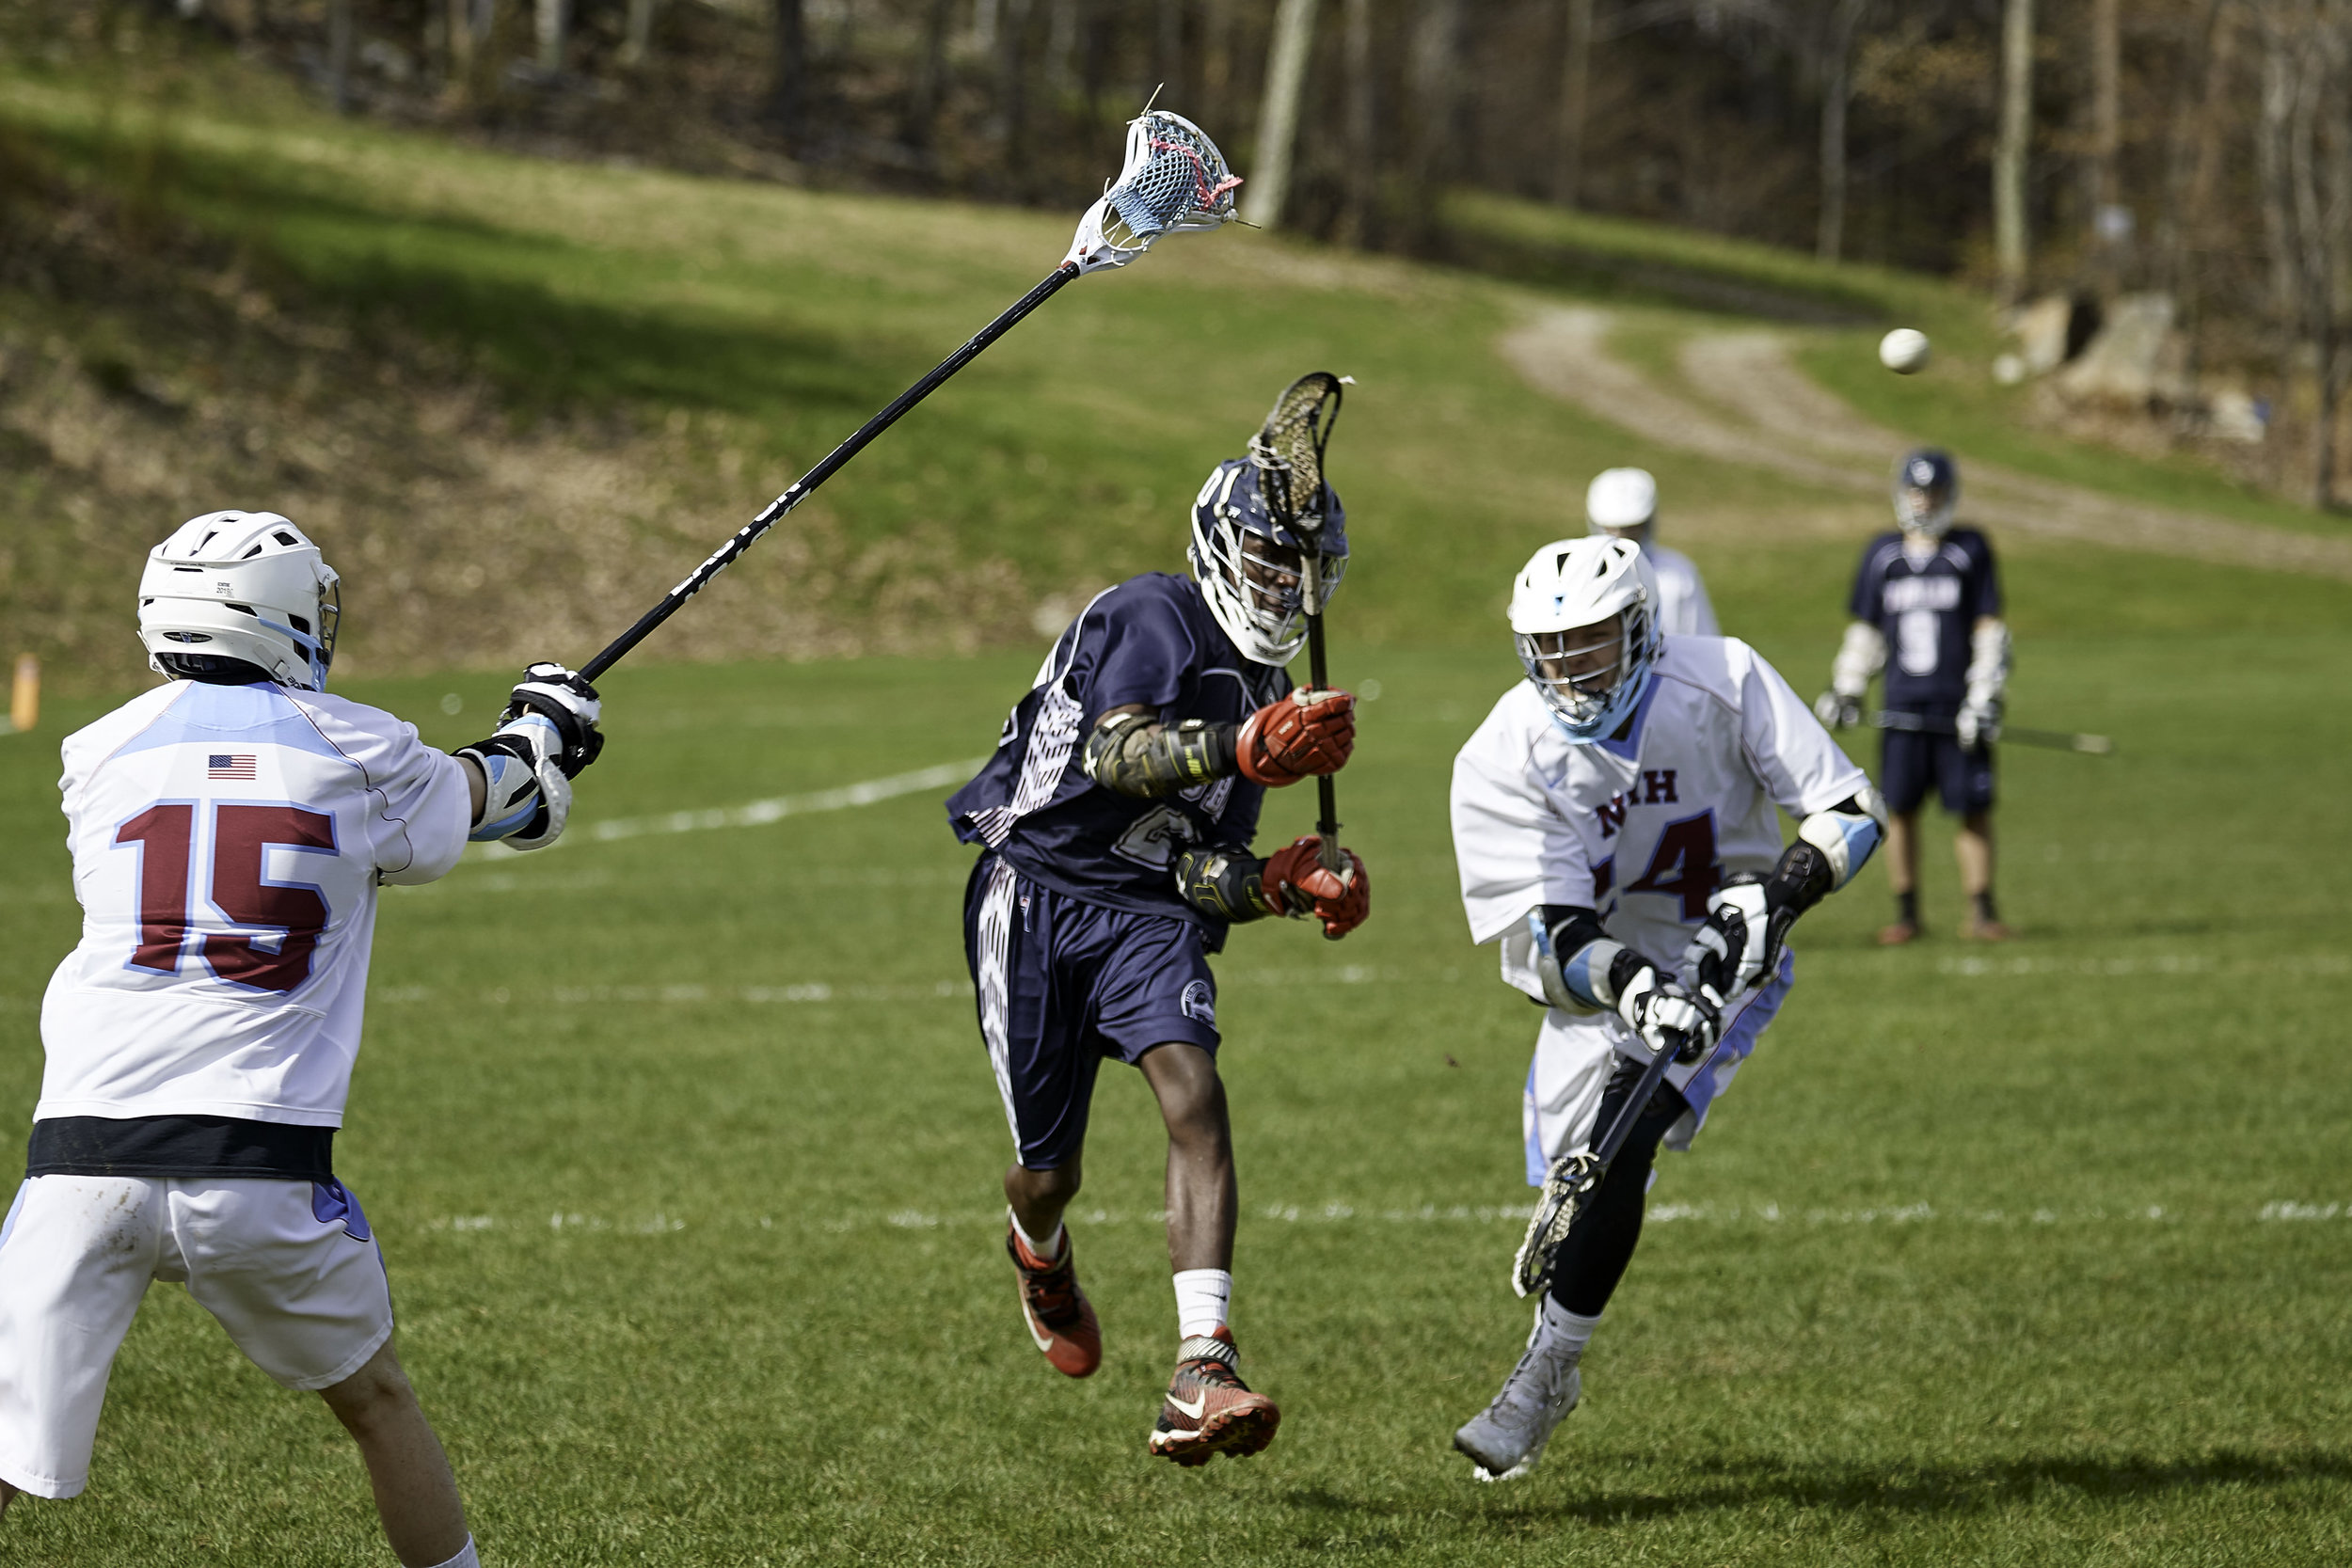 Boys Lax vs Northfield Mount Hermon JV - May 15 2019 - 0026.jpg